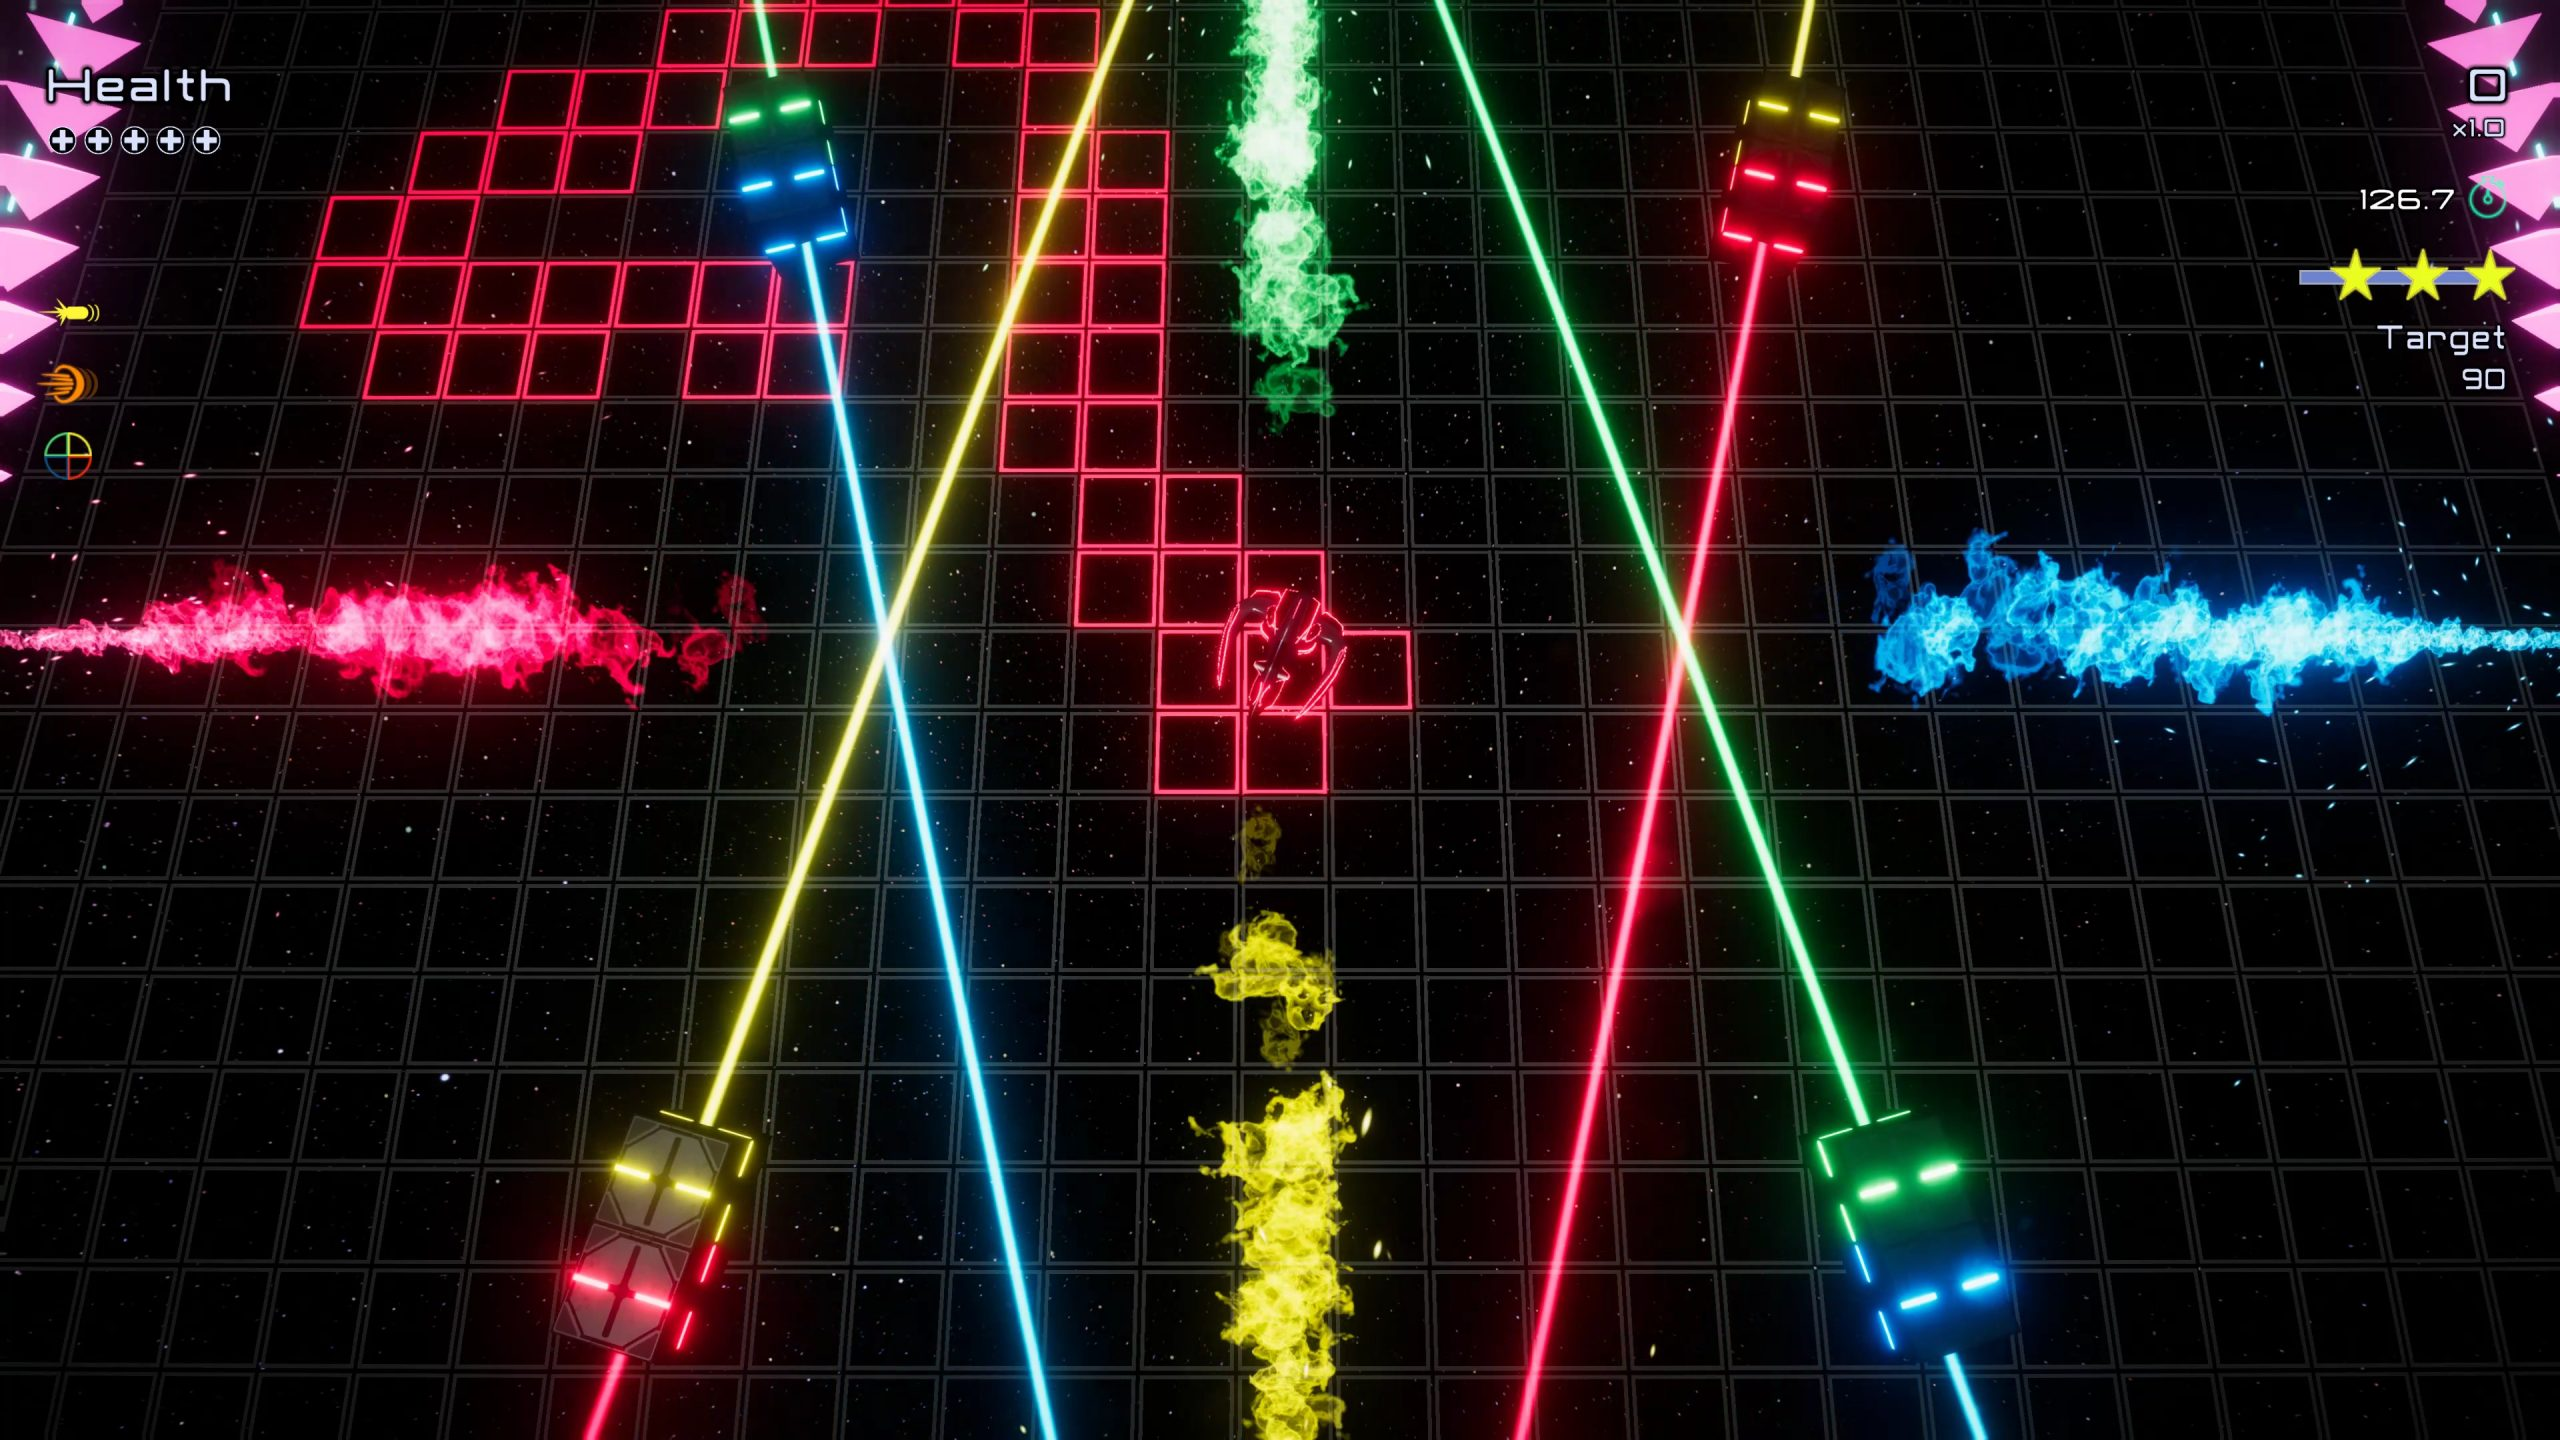 It's Funtime. Still neon stuff, there's some colourful lasers stretching across the screen this time.